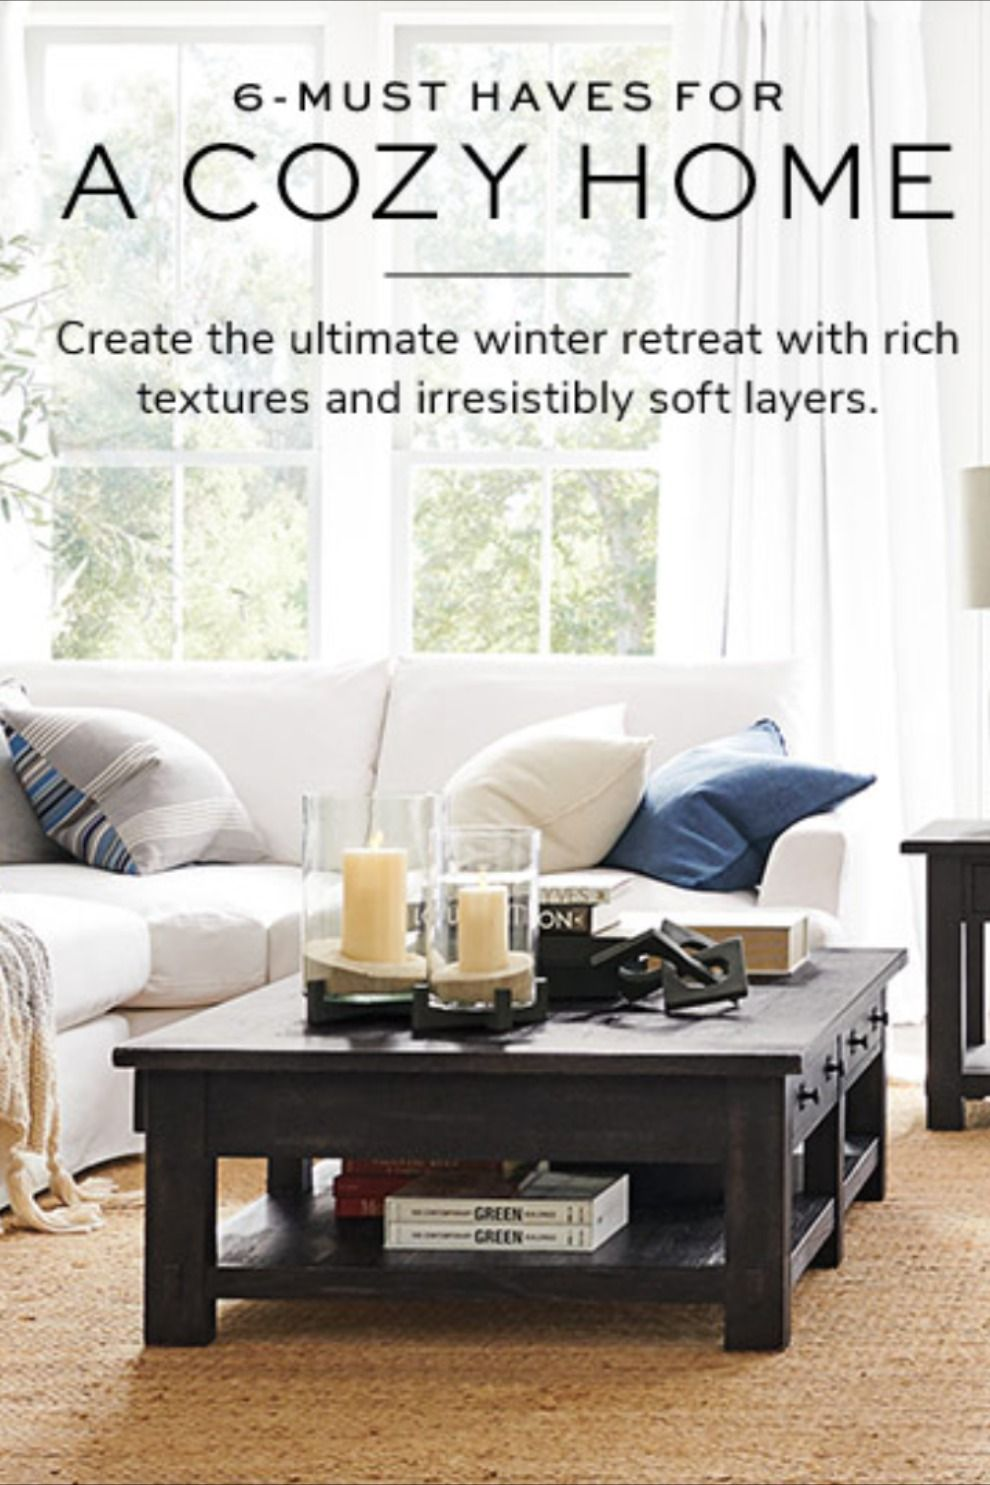 6 Cozy Must Haves for A Cozy Home